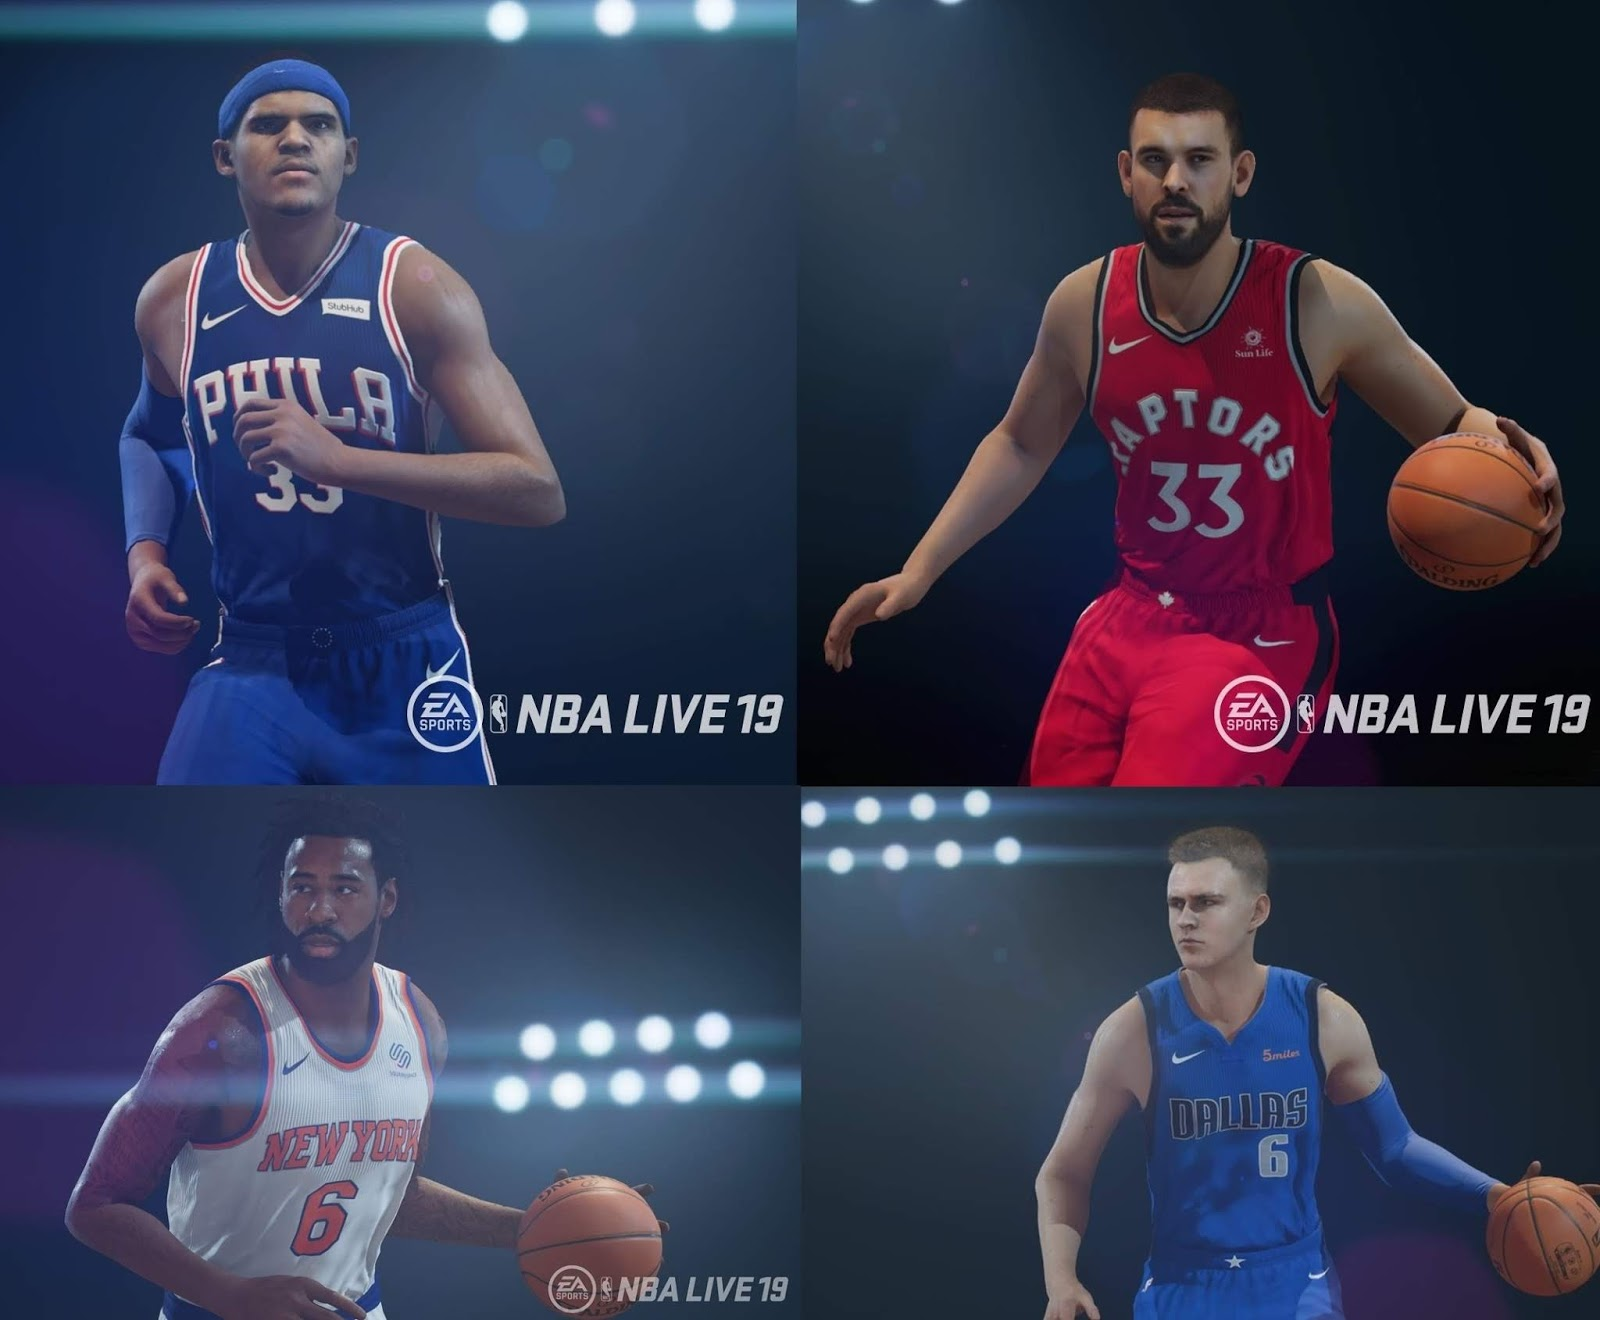 bd4685a48aa9 NBA Live 19 - Patch 1.09 with Updated Trade Deadline Rosters ...